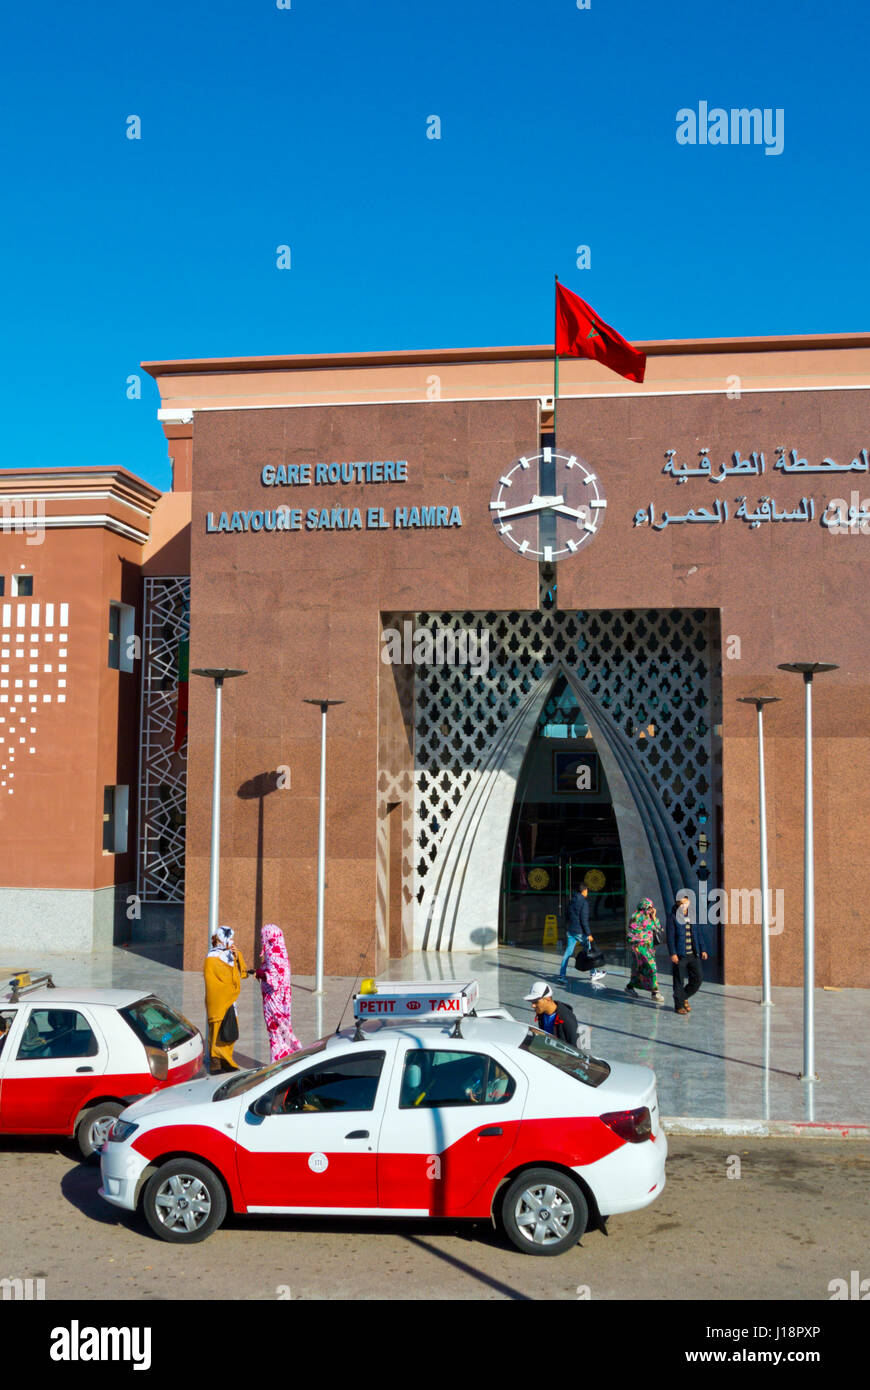 Gare routiere, long distance bus station, Laayoune, El Aioun, Western Sahara, administered by Morocco - Stock Image